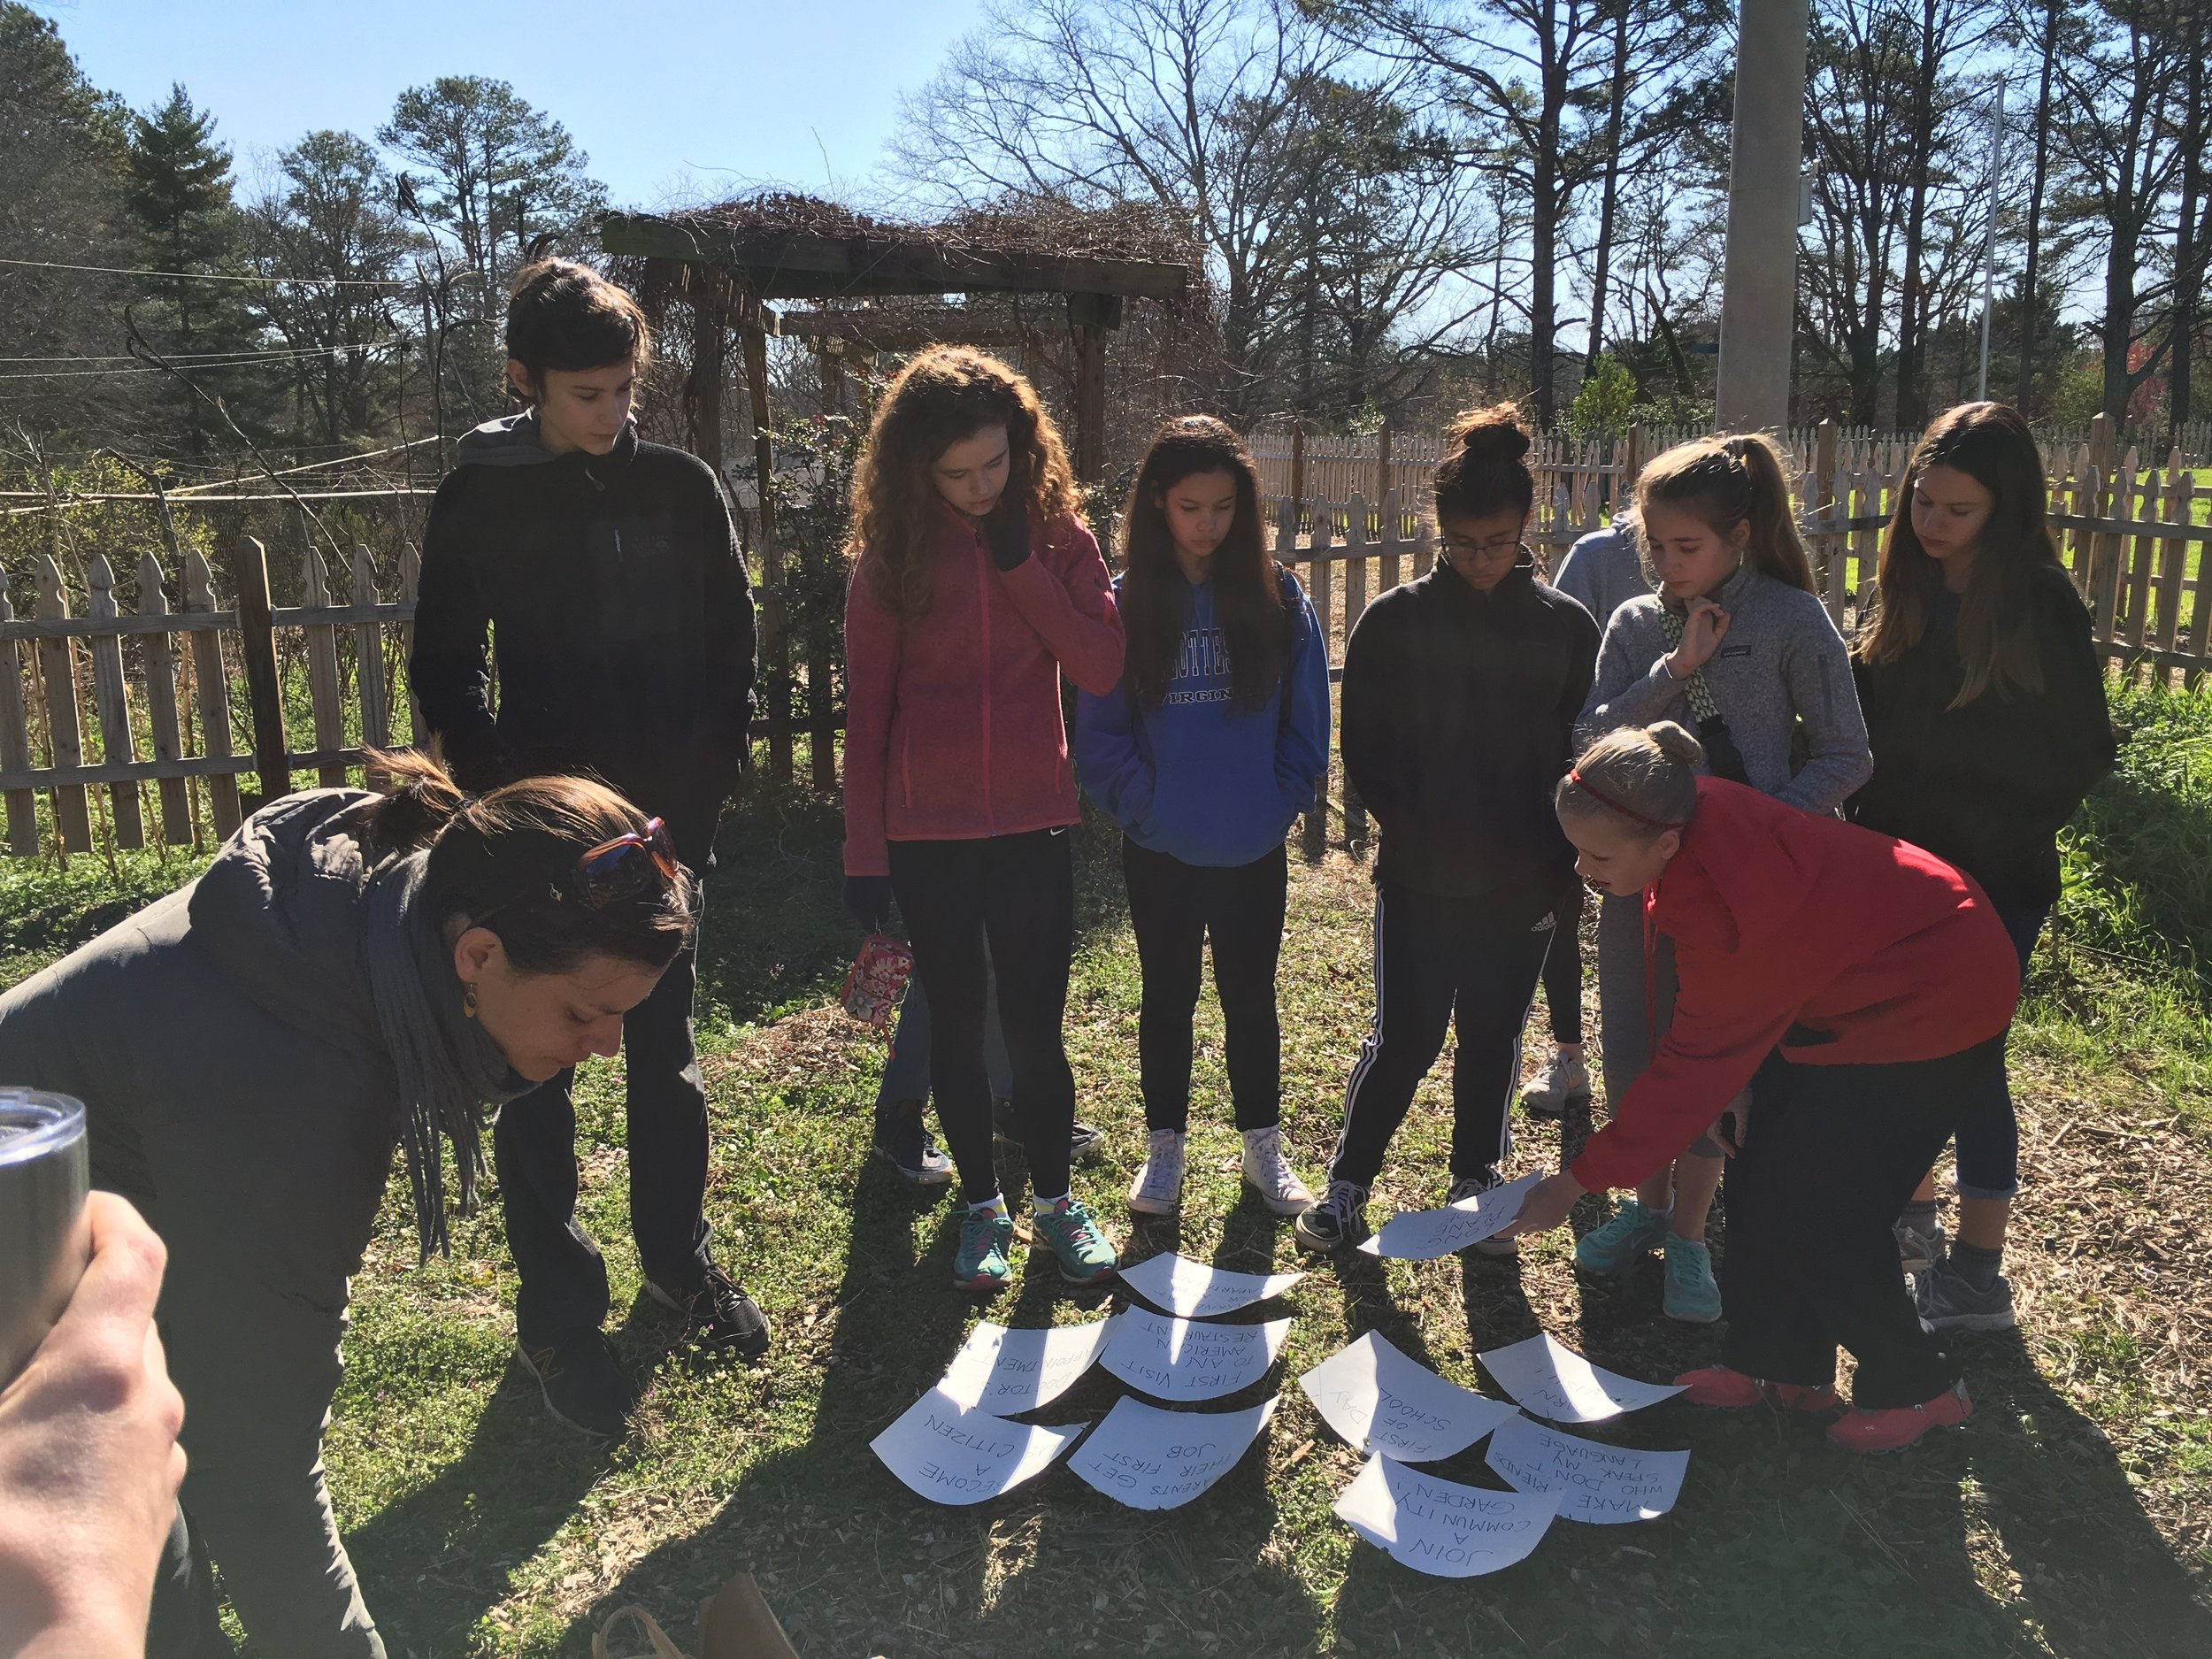 This past Saturday, the confirmands and their friends-in-faith gathered for a community garden workday.